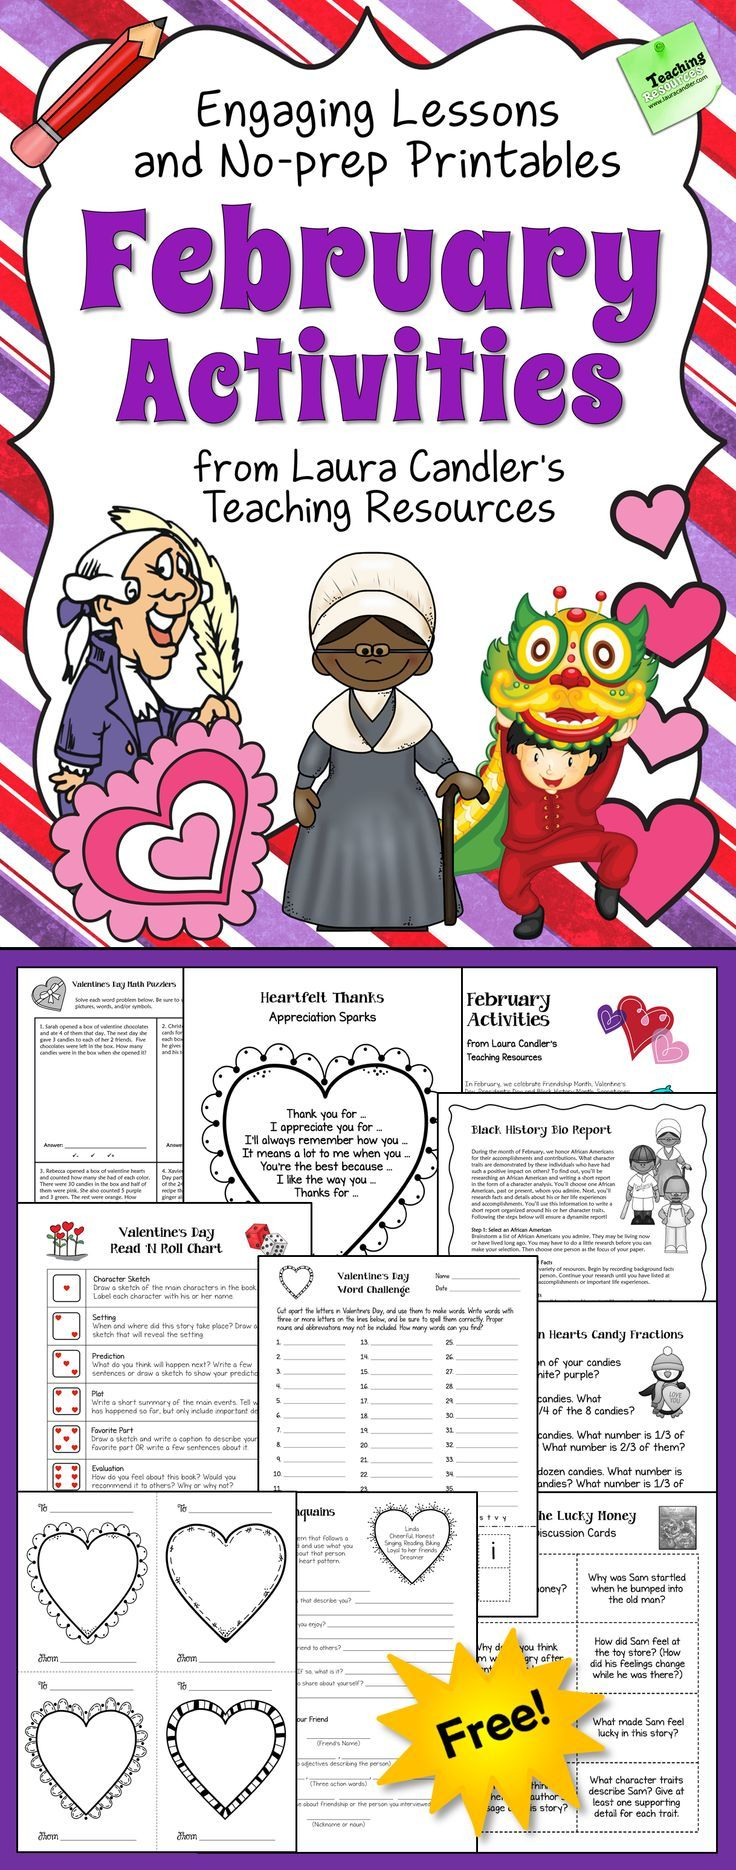 Free February printables and activities for upper elementary, a 26-page pack with thematic no-prep lessons for Valentine's Day, Friendship Month, Black History Month, Presidents' Day and the Chinese New Year. Newly updated!